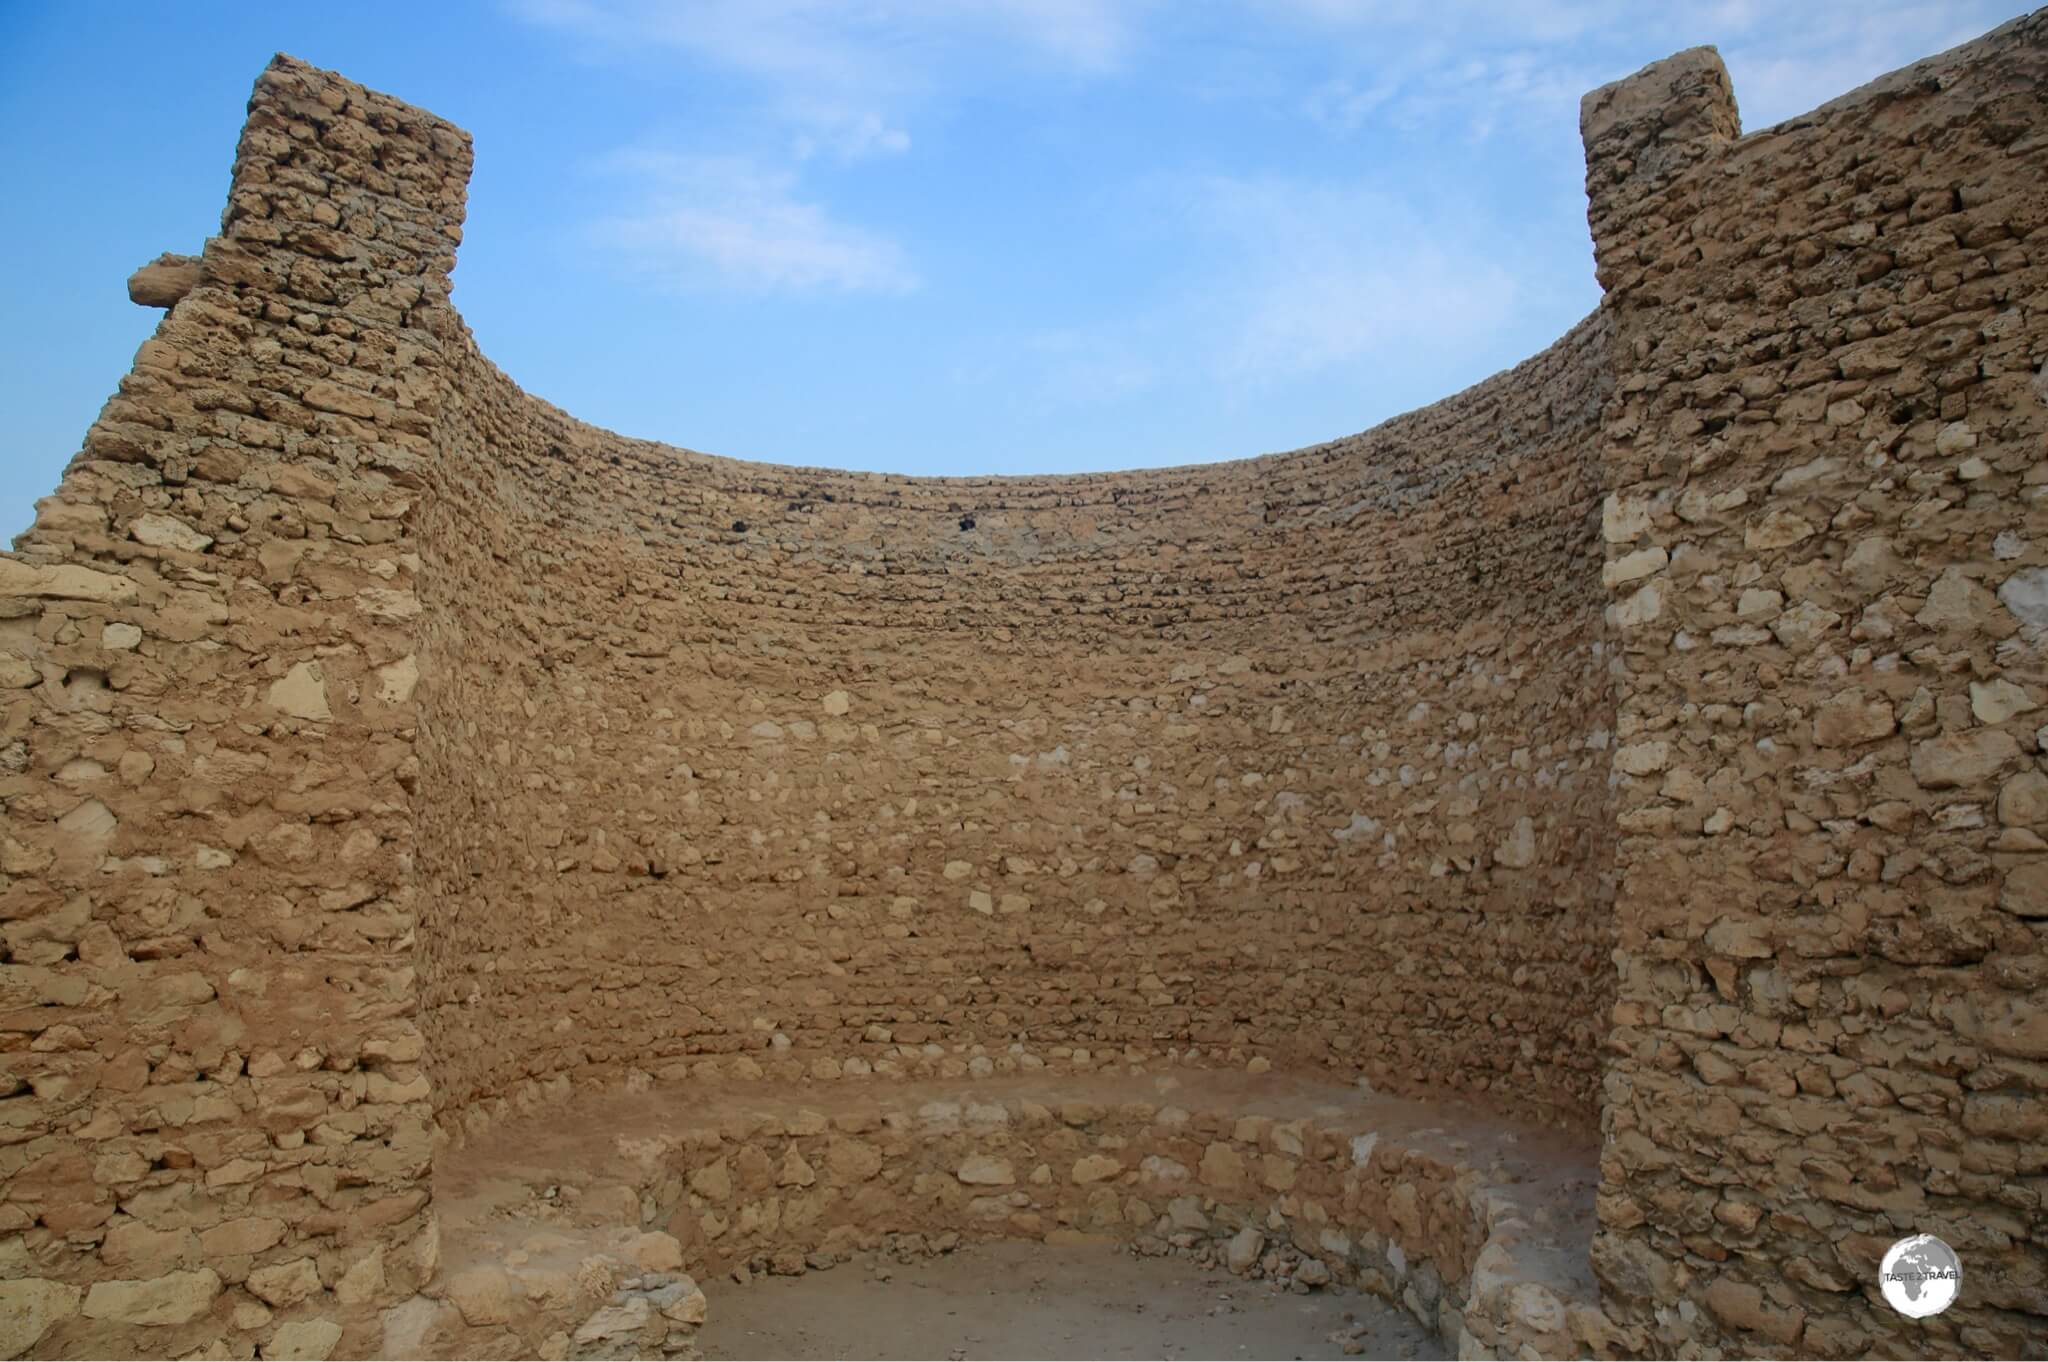 One of the remaining walls of Tarout castle.